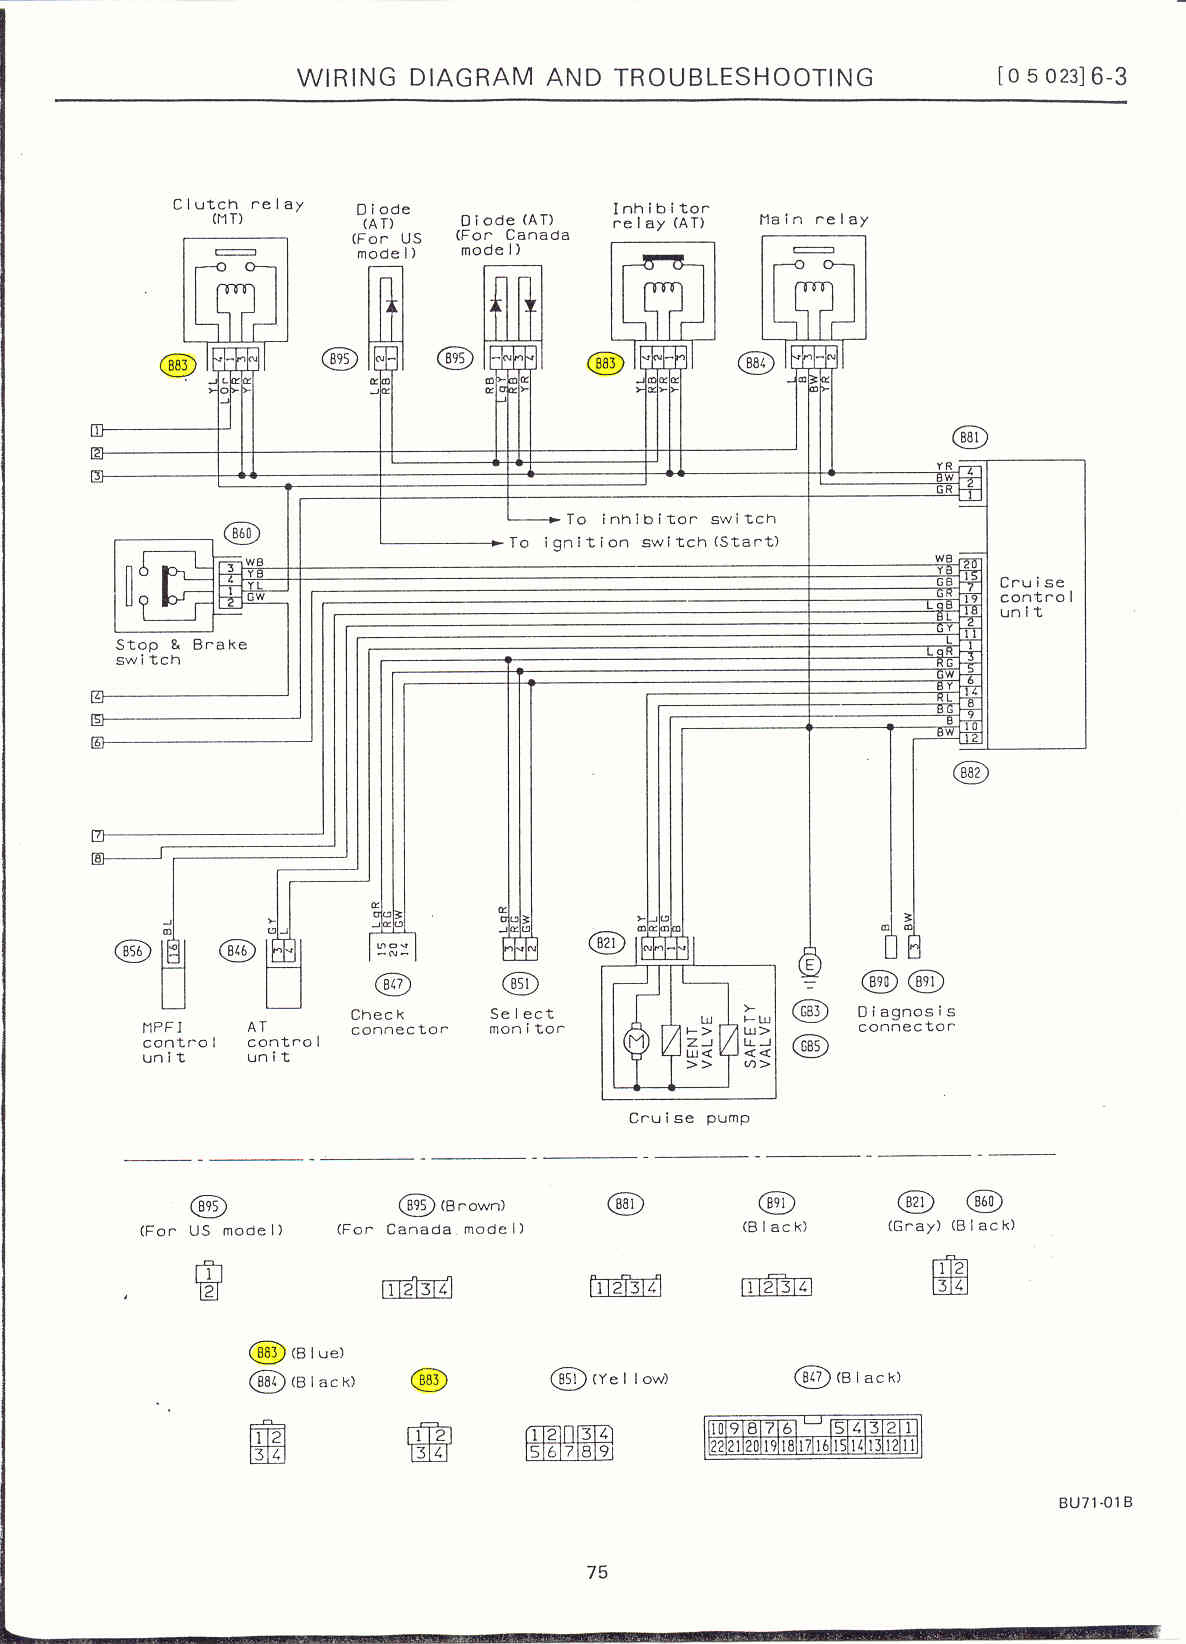 subaru legacy wiring diagram Collection-1997 Subaru Legacy Wiring Diagram Best Legacycentral Bbs • View topic Power Mode Override Switch 16-c